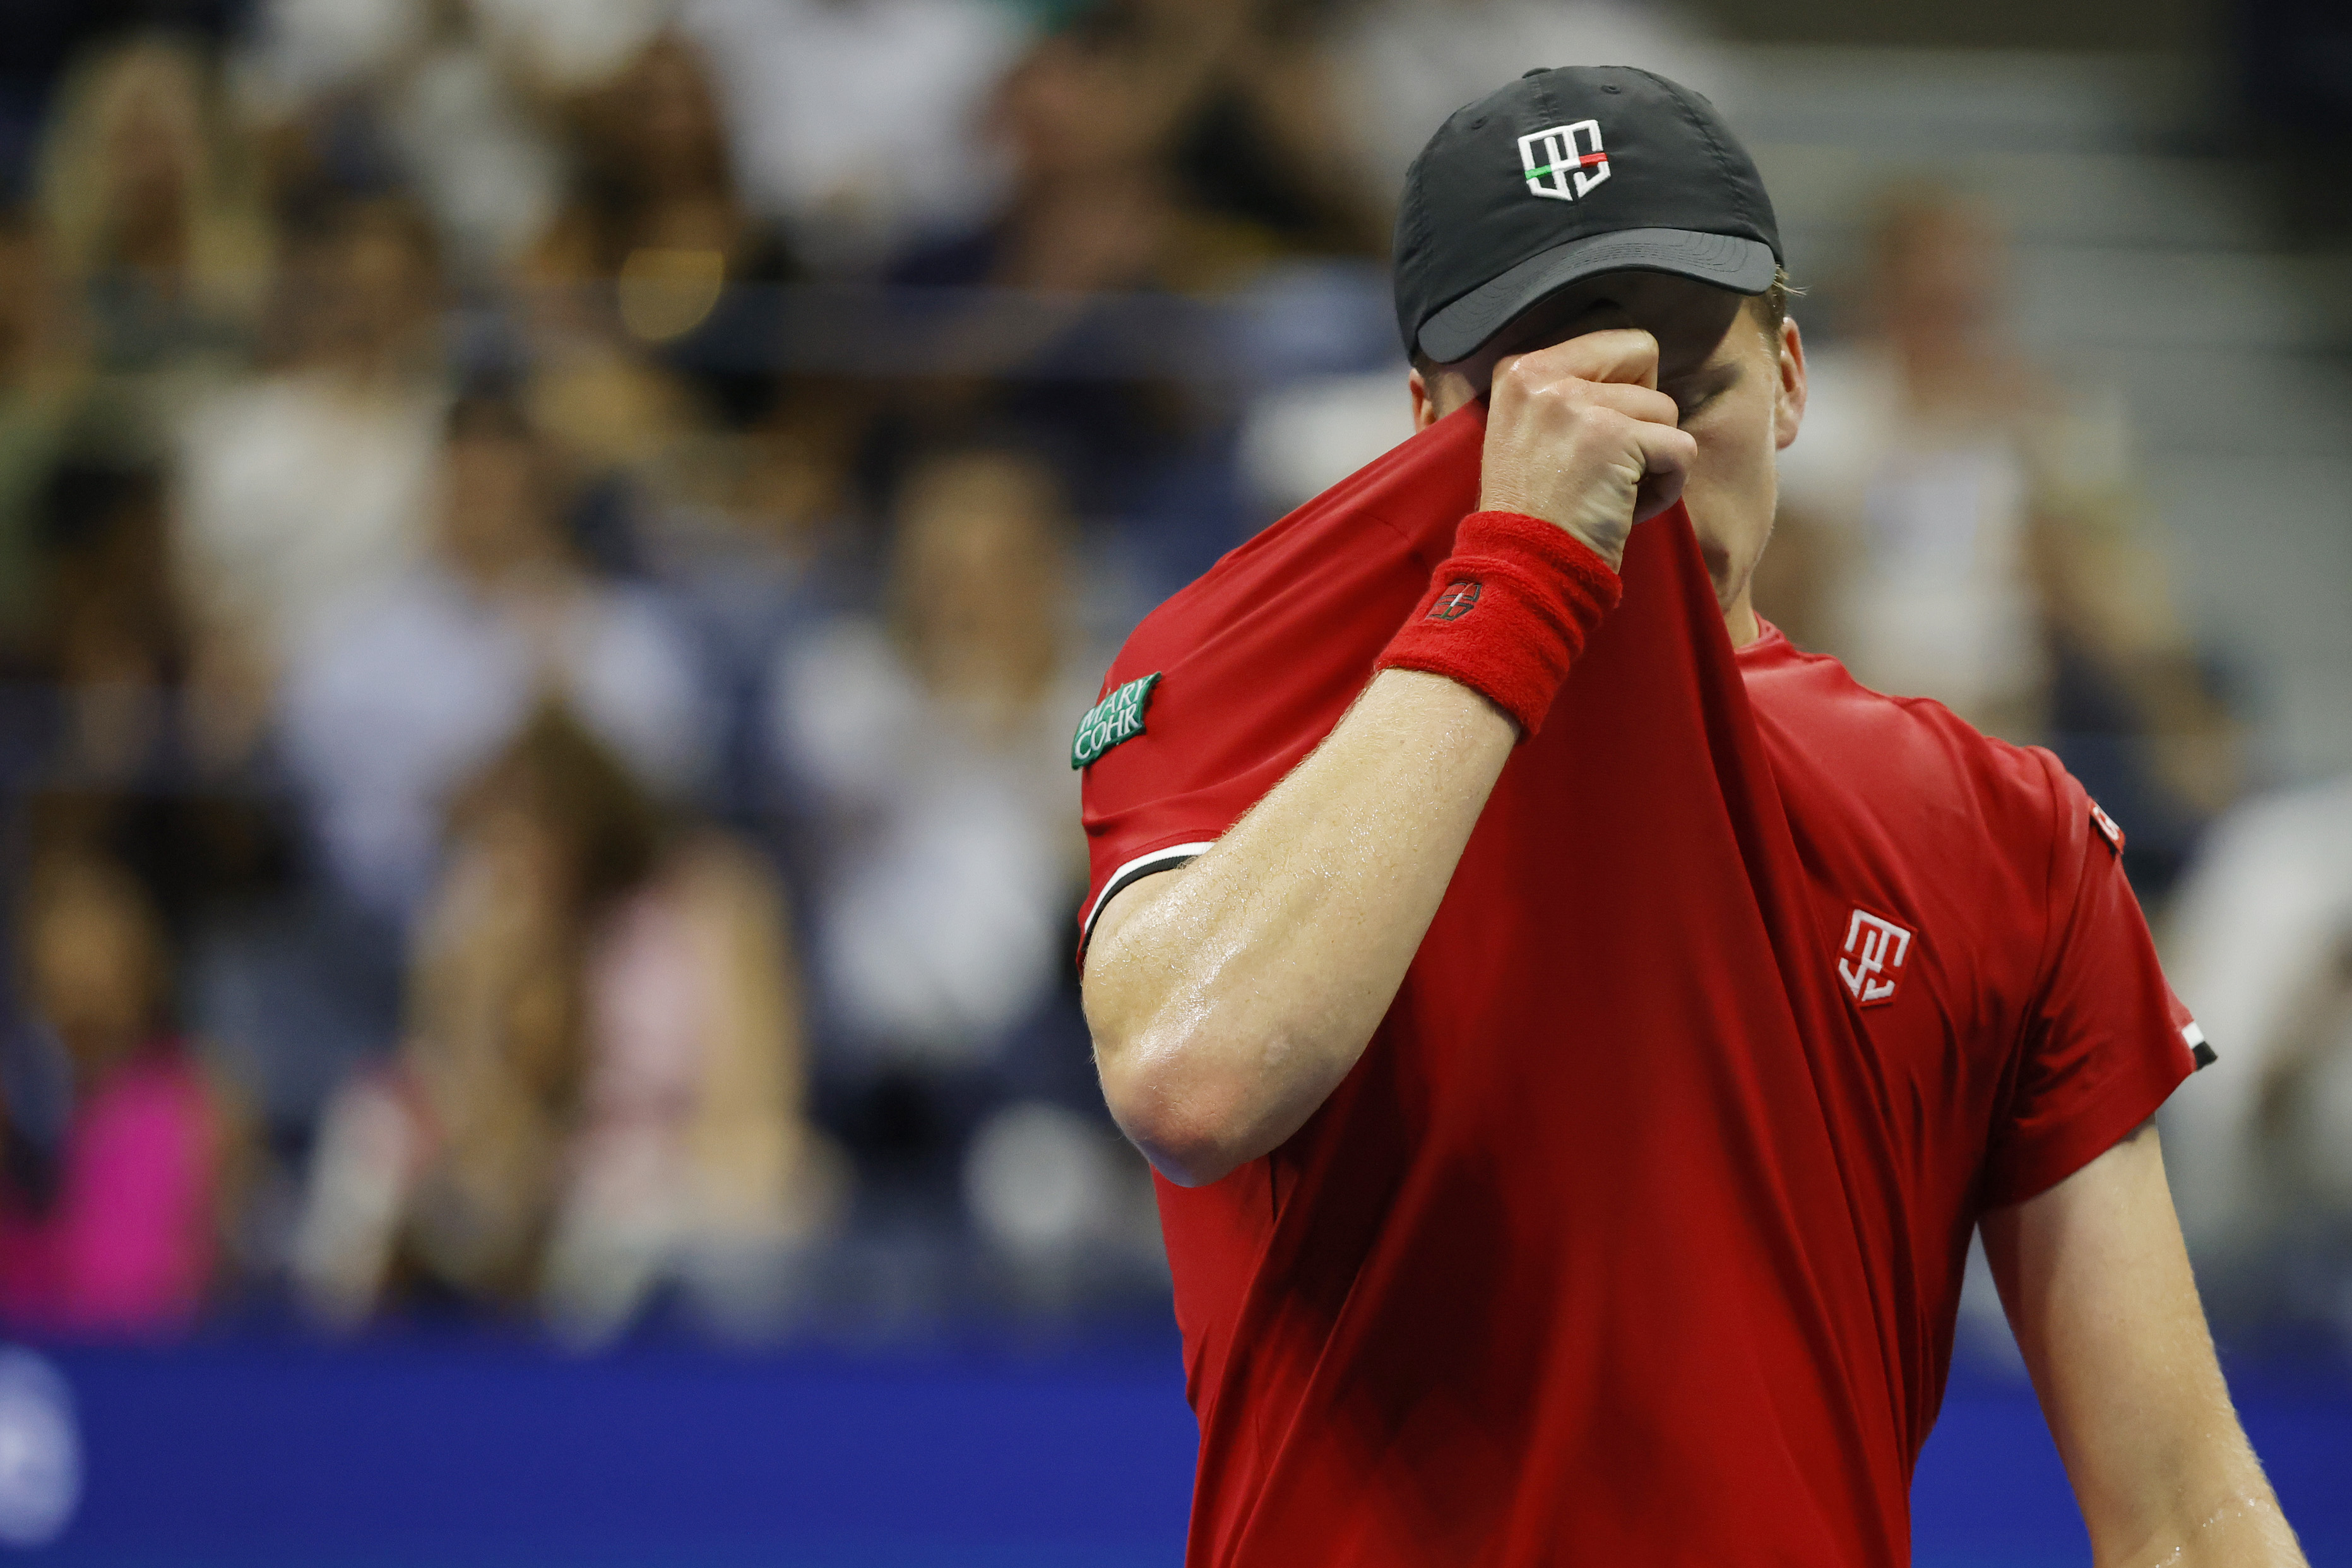 Sep 6, 2021; Flushing, NY, USA; Jenson Brooksby of the United States wipes his face between points against Novak Djokovic of Serbia (not pictured) on day eight of the 2021 U.S. Open tennis tournament at USTA Billie Jean King National Tennis Center. Mandatory Credit: Geoff Burke-USA TODAY Sports